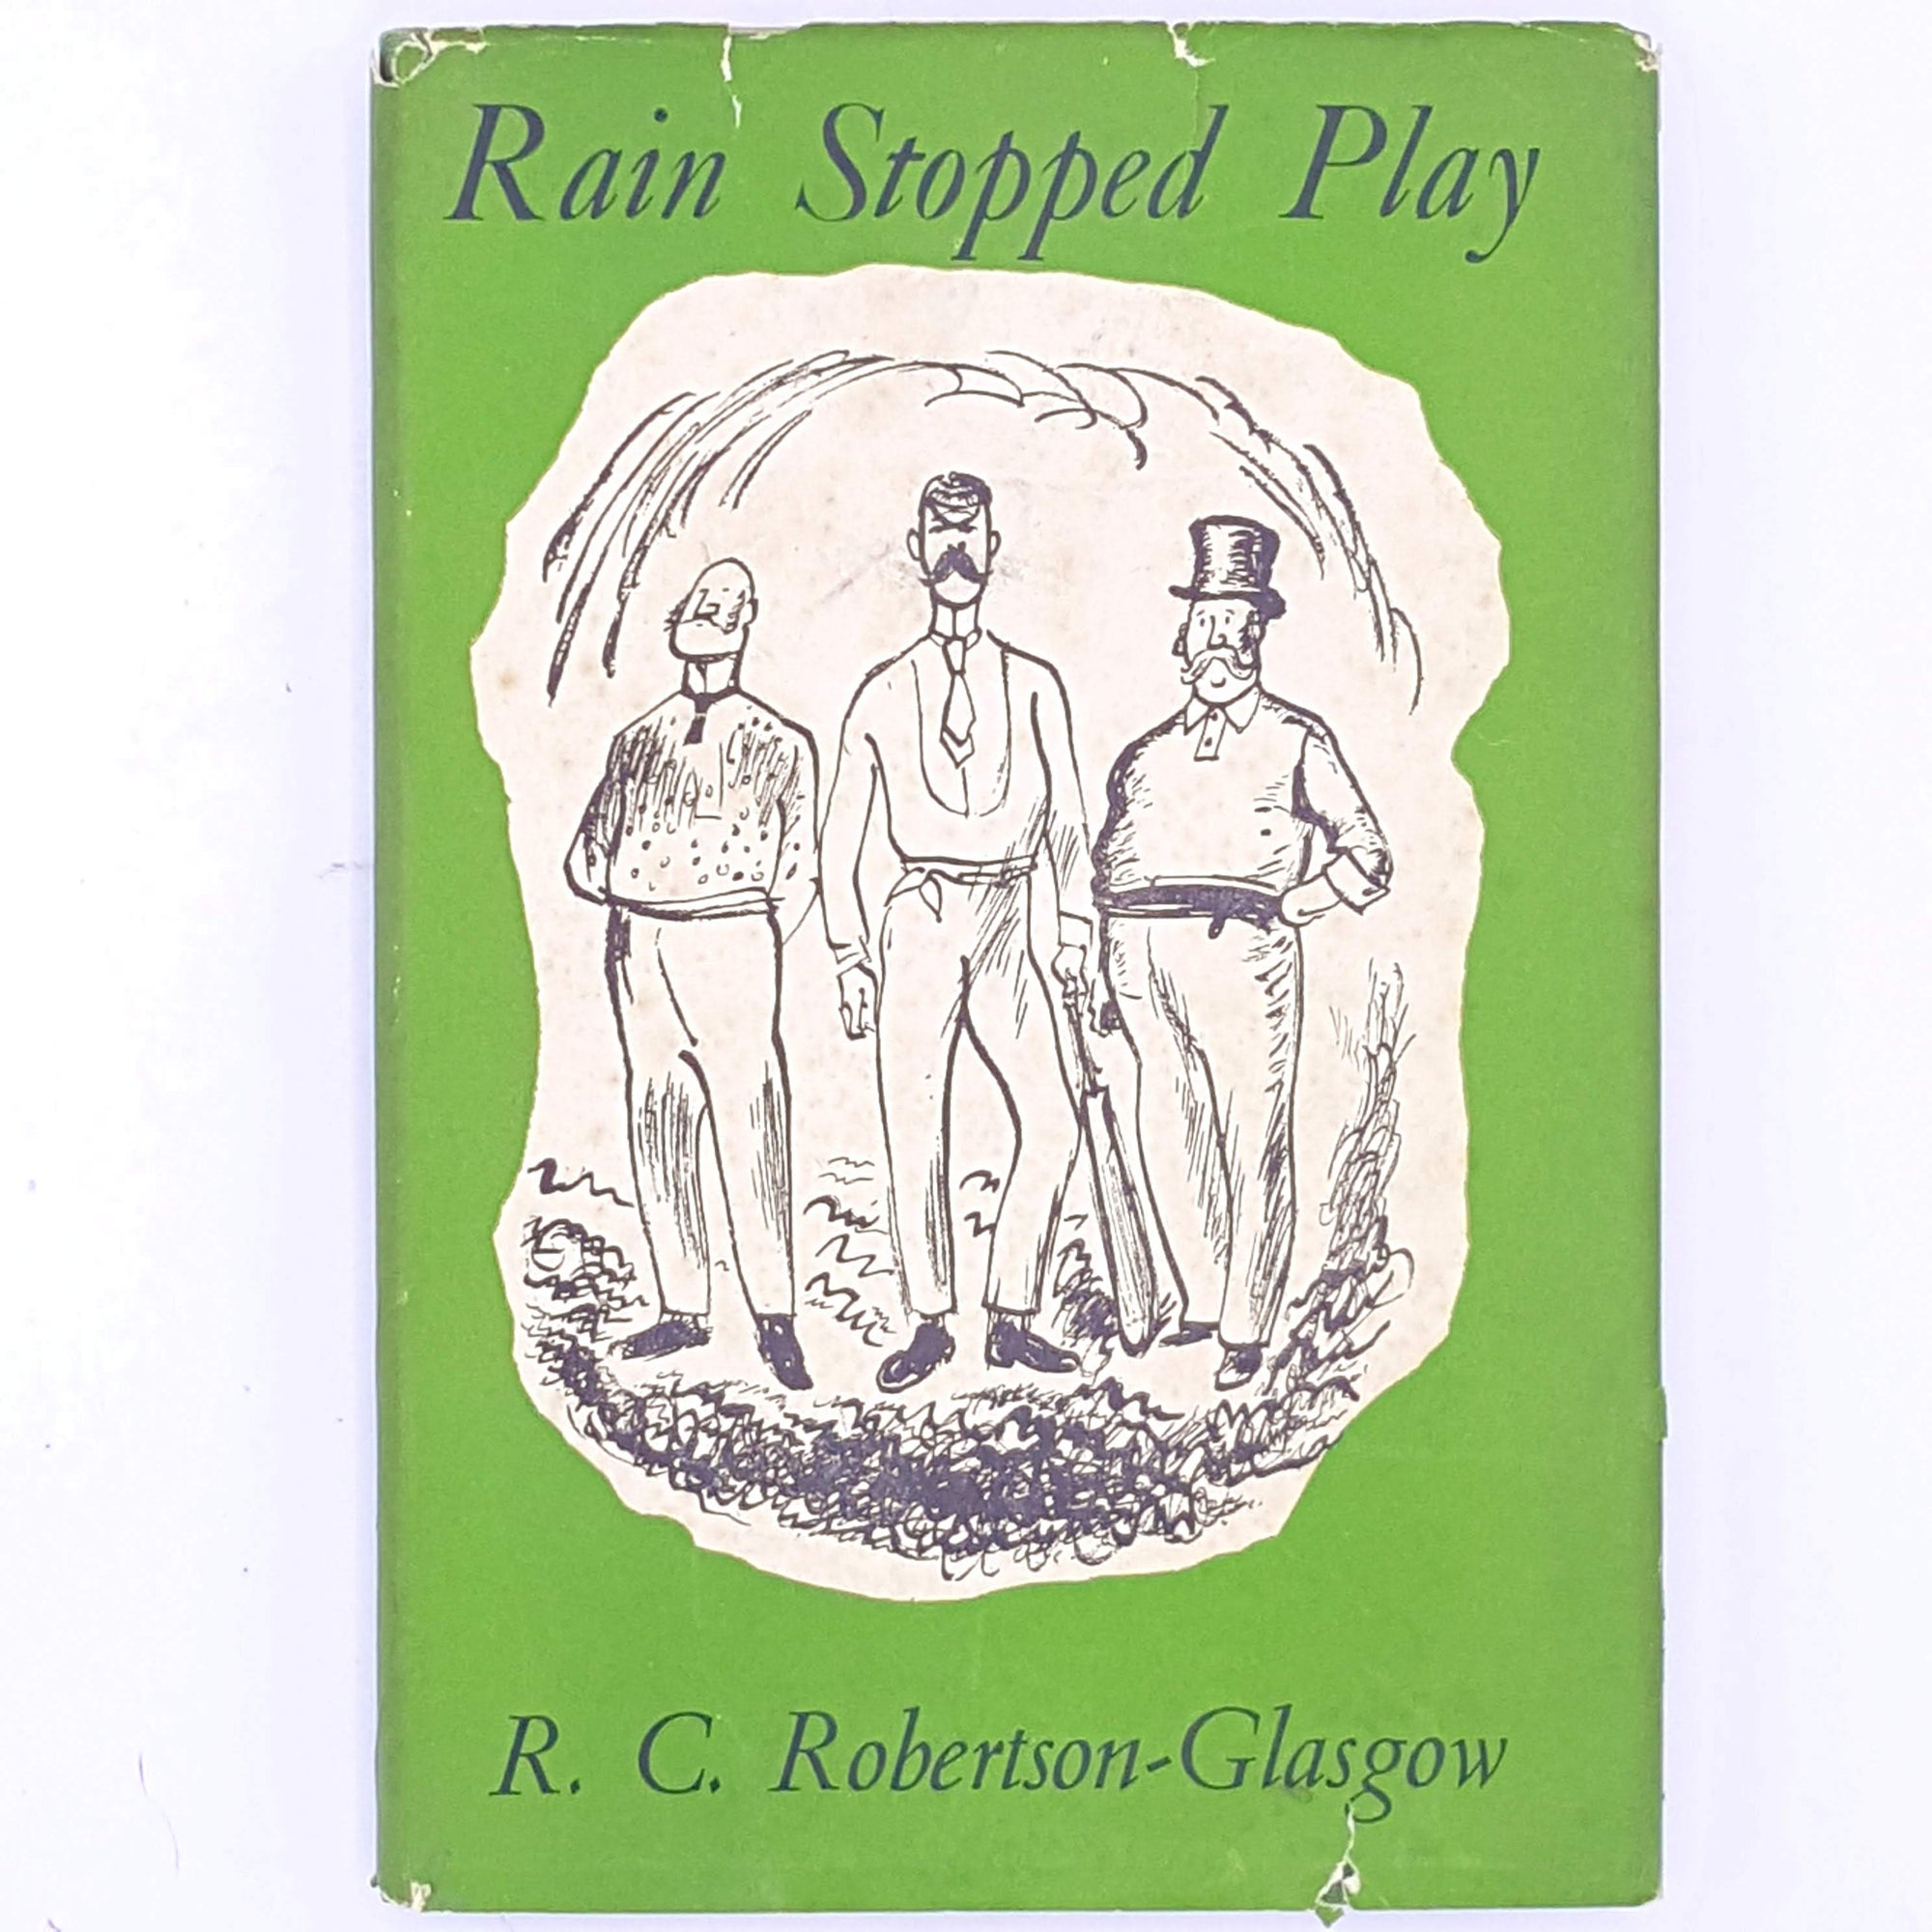 old-antique-patterned-thrift-rain-stopped-play-country-house-library-books-for-him-vintage-christmas-gifts-decorative-for-sports-fans-classic-cricket-sport-